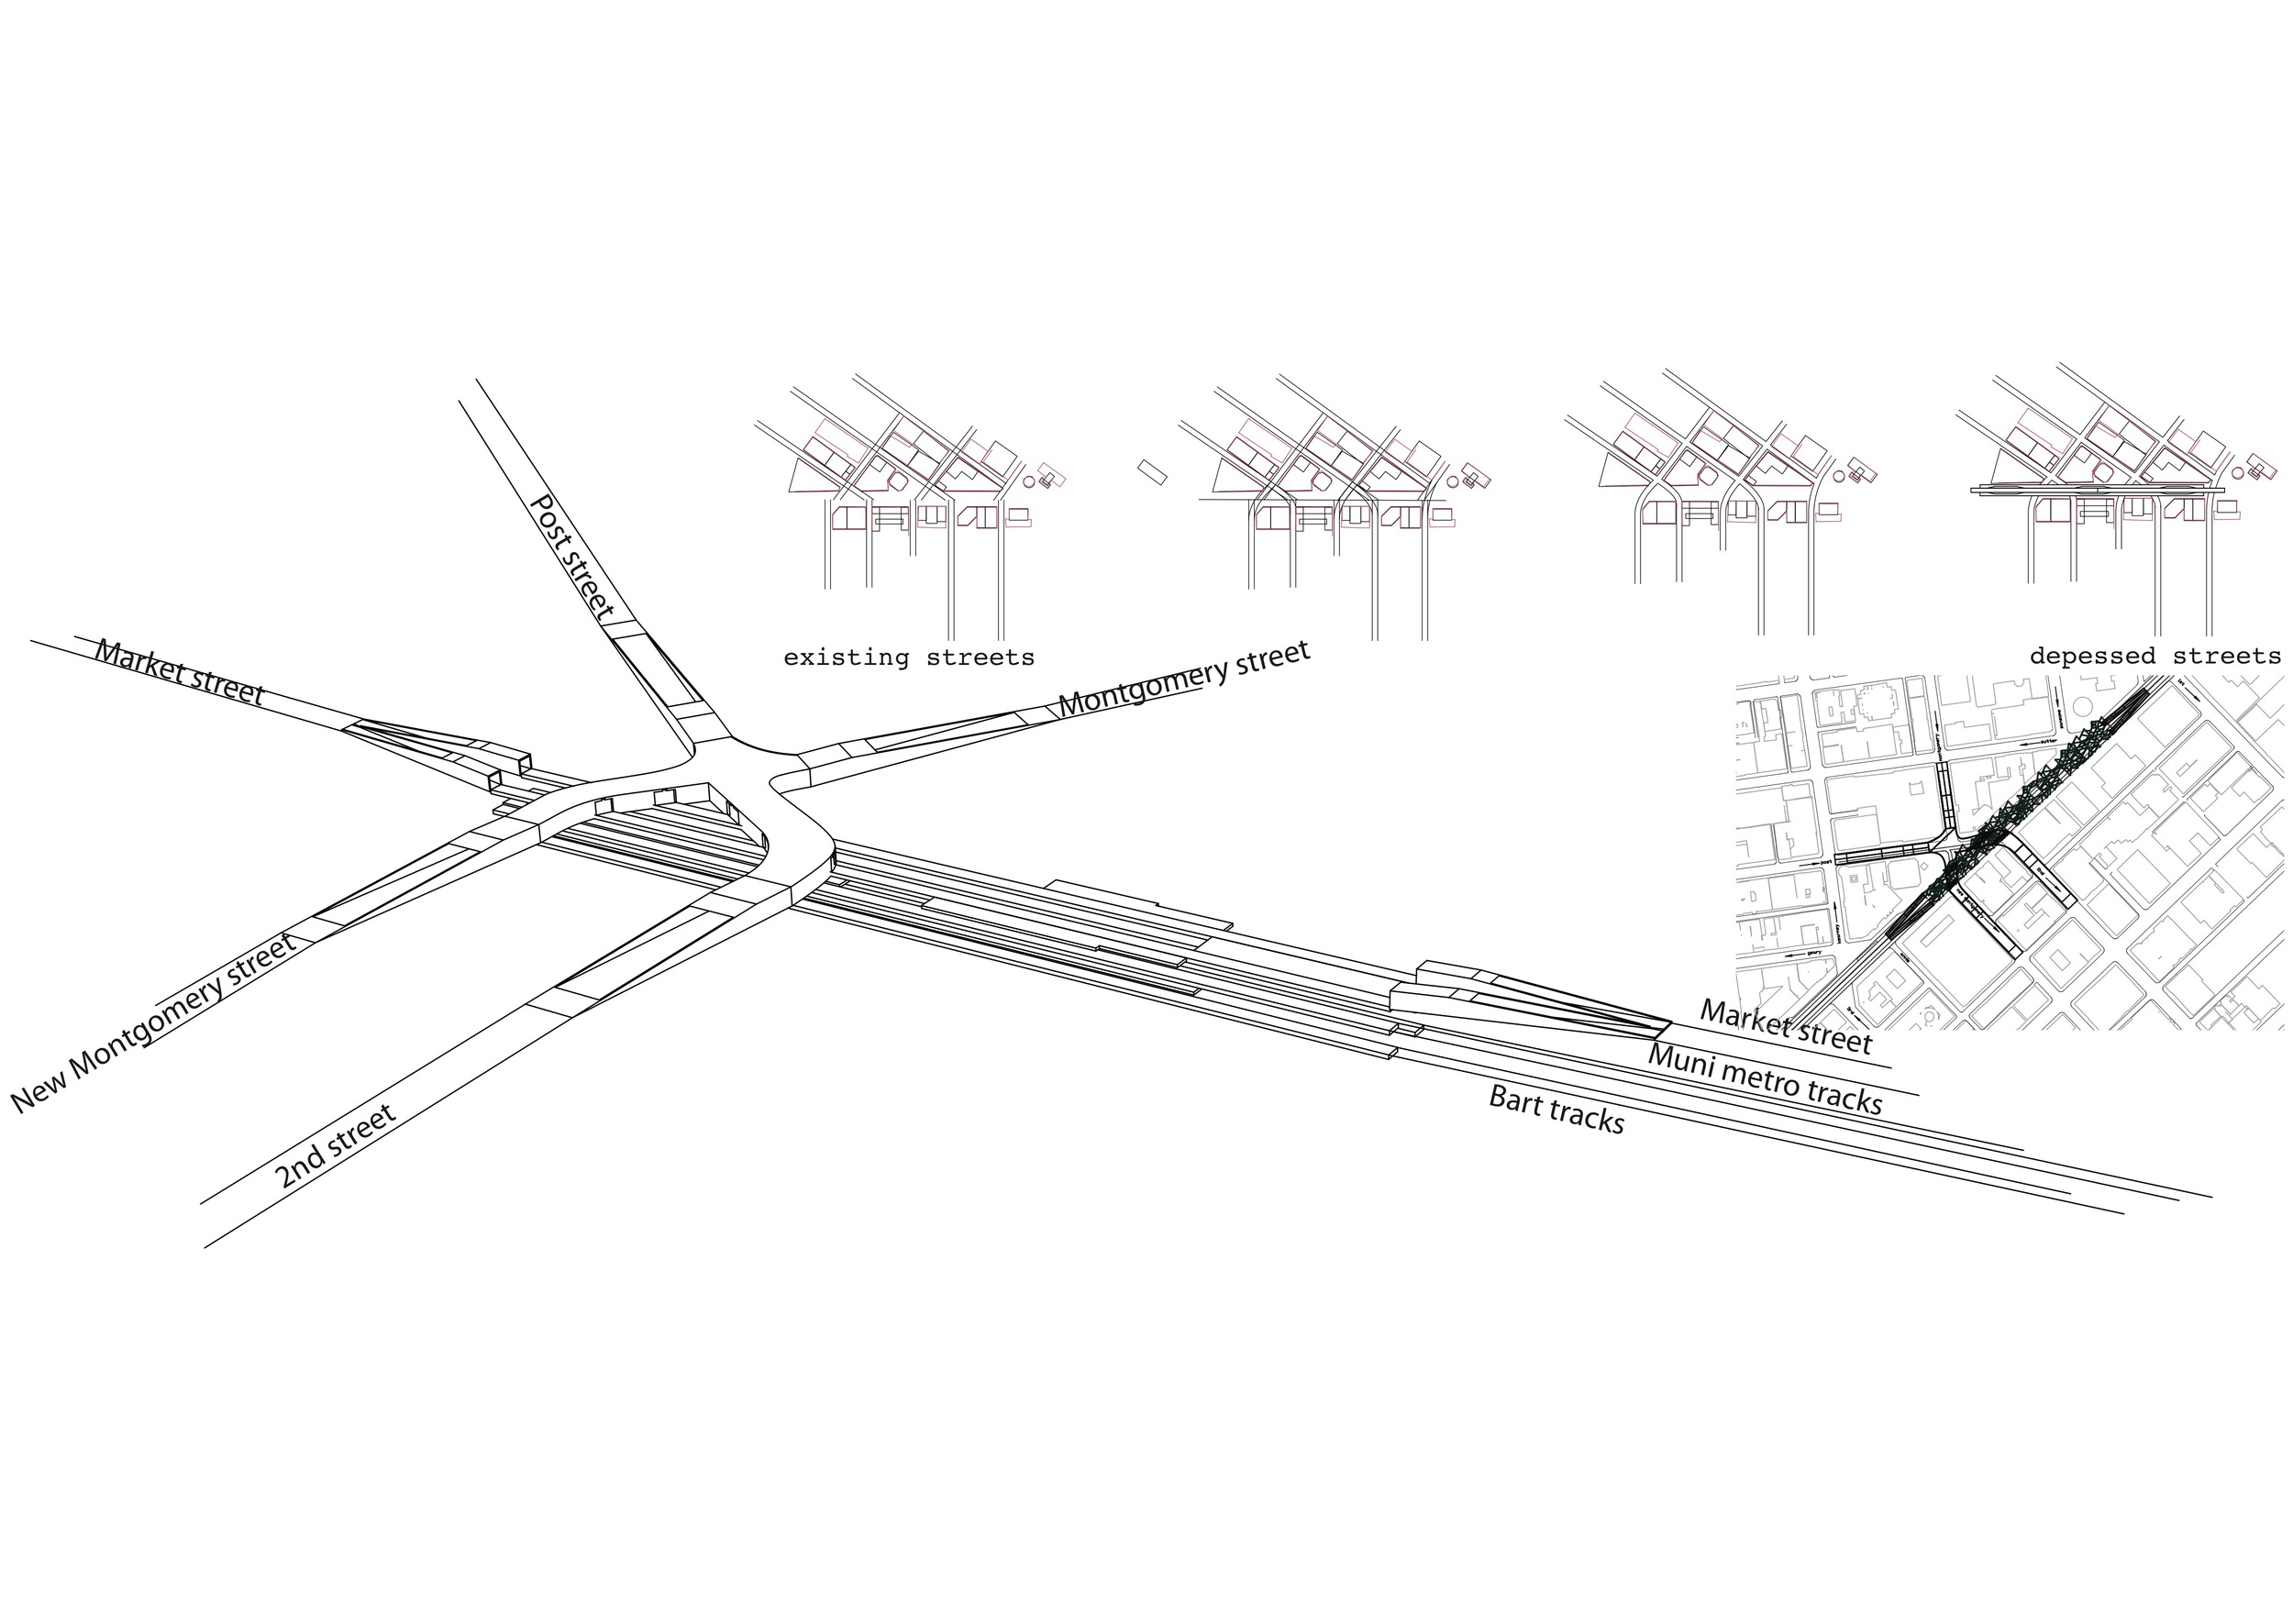 3D model depicting the subterranean traffic flow deck and tunnel infrastructure